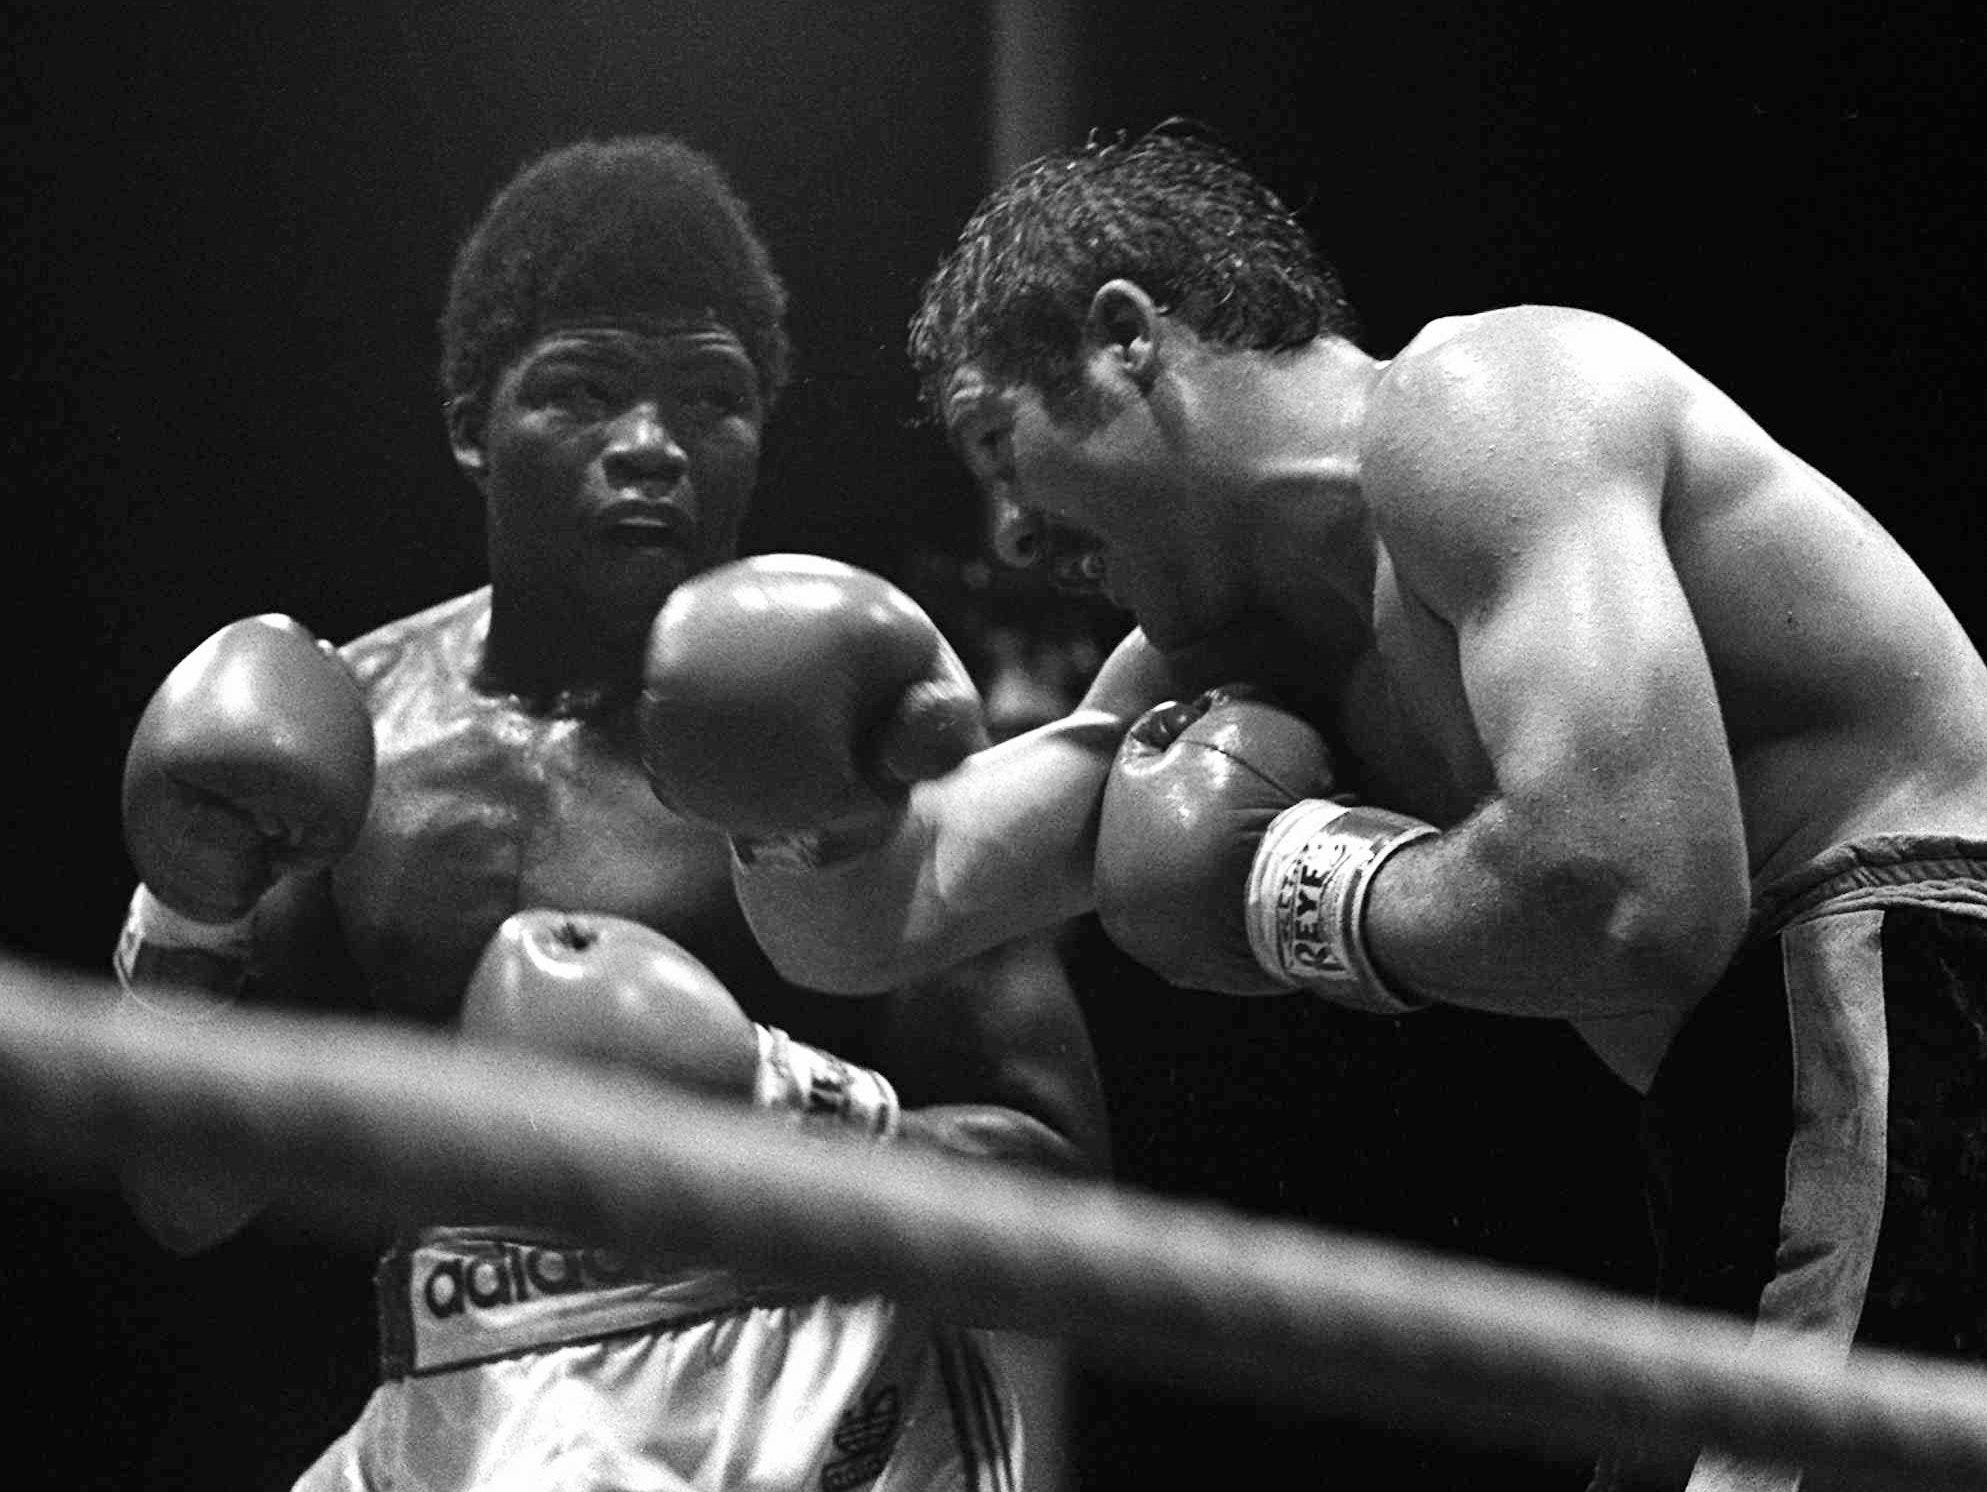 John Tate, right, from Knoxville, Tenn., exchanges blows with South Africa's Gerrie Coetzee during their world heavyweight title bout at the Loftus Versfeld stadium in Pretoria, South Africa, in this Oct. 20, 1979 file photo. Tate, 43,  was killed Thursday, April 9, 1998, when the pickup truck he was driving crashed into a utility pole. The accident occurred less than a mile from the old Ivy Glenn training camp Tate used when he won the WBA title in a decision over a battered Coetzee.(AP Photo)